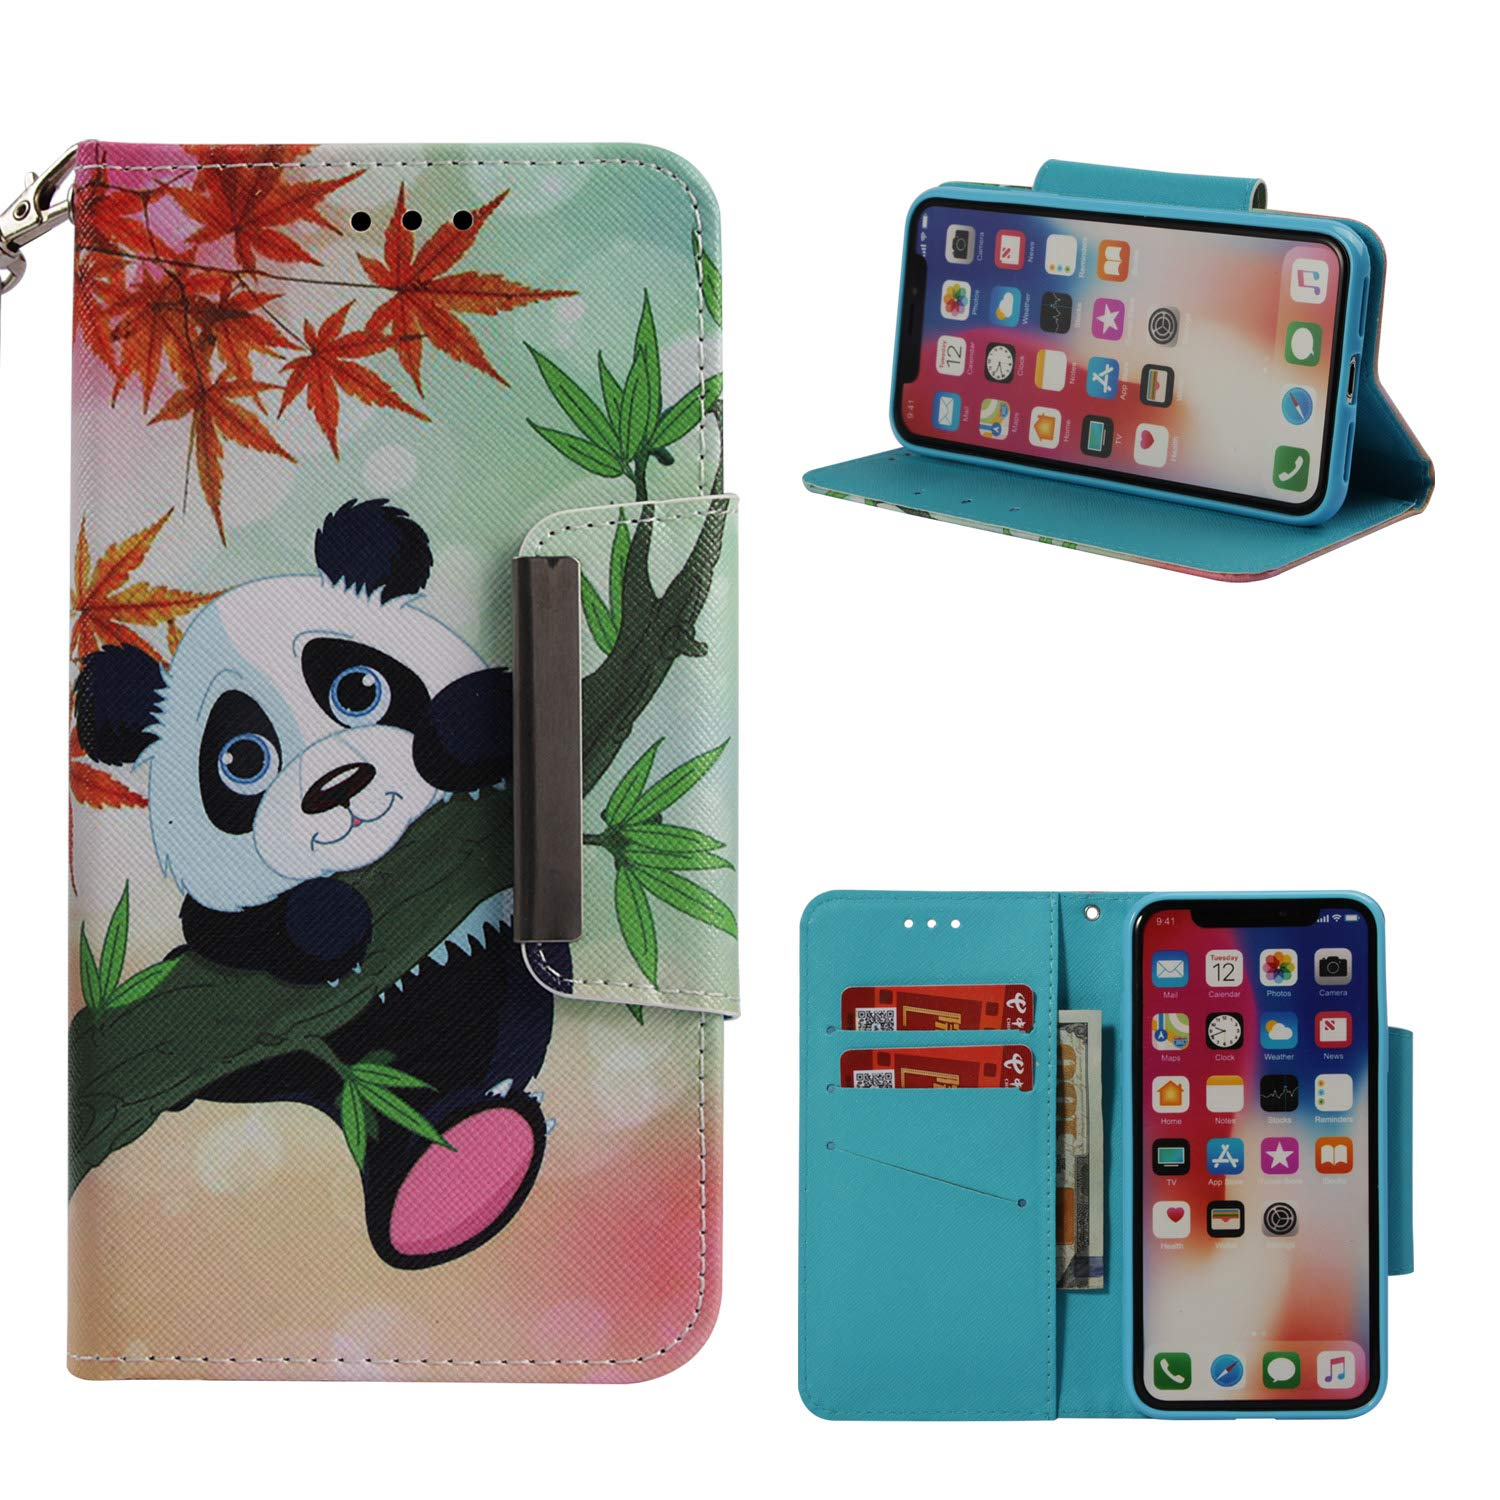 Leather Wallet Case for iPhone X,Shinyzone Cute Cartoon Animal Panda Painted Pattern Flip Stand Case,Wristlet & Metal Magnetic Closure Protective Cover